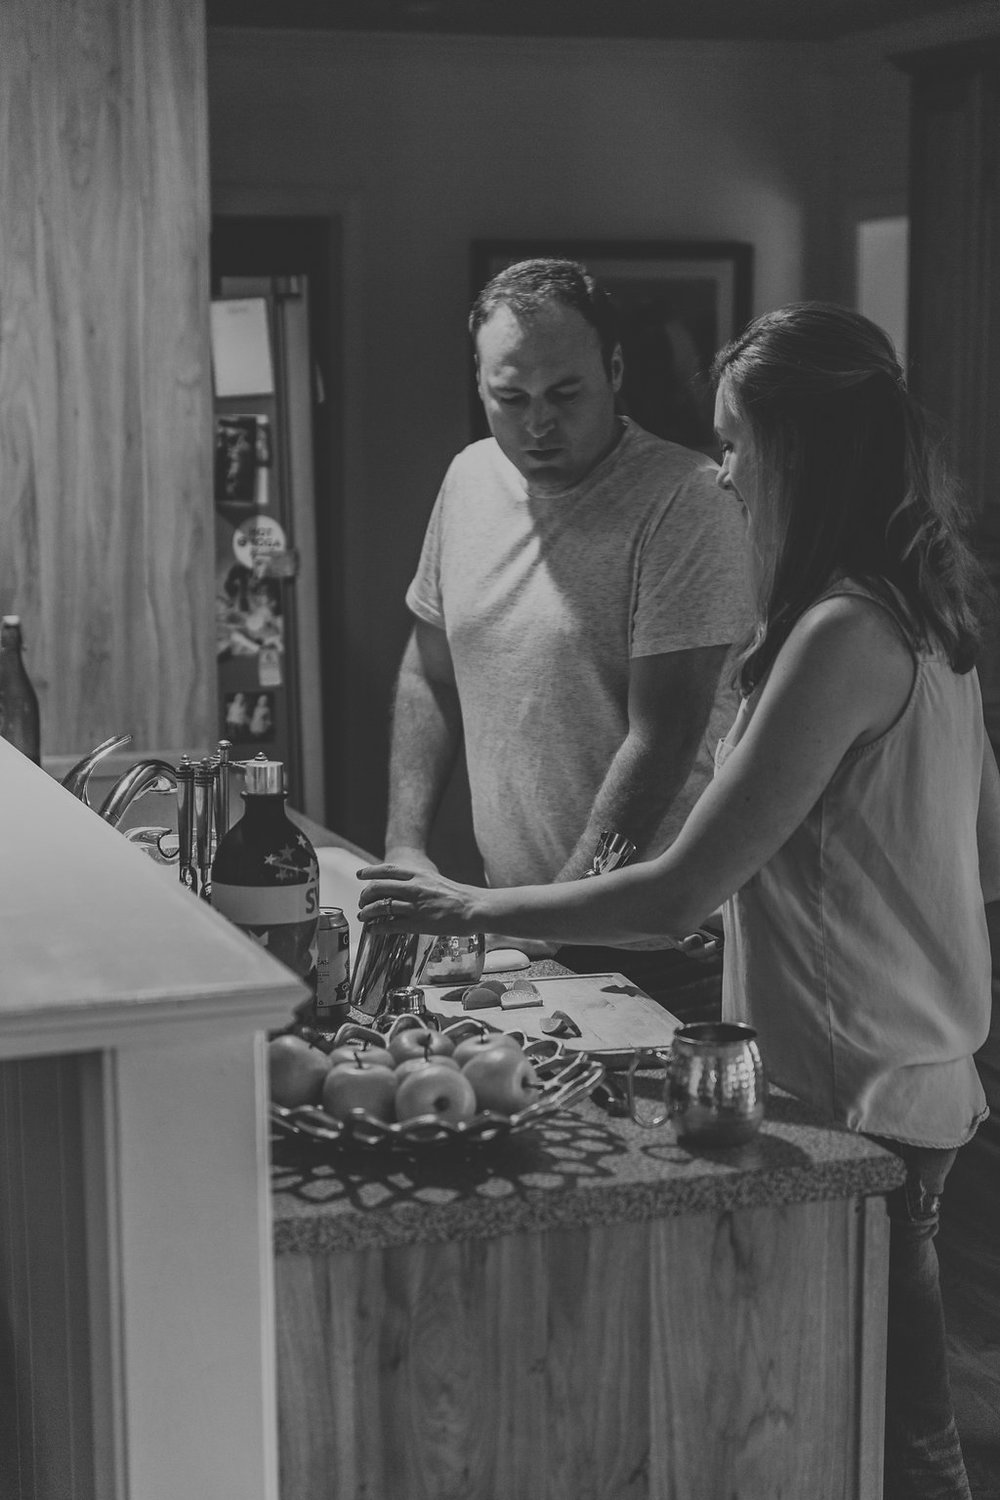 Kaitlyn Stoddard Wedding Photography Tennessee couple preparing limes in kitchen